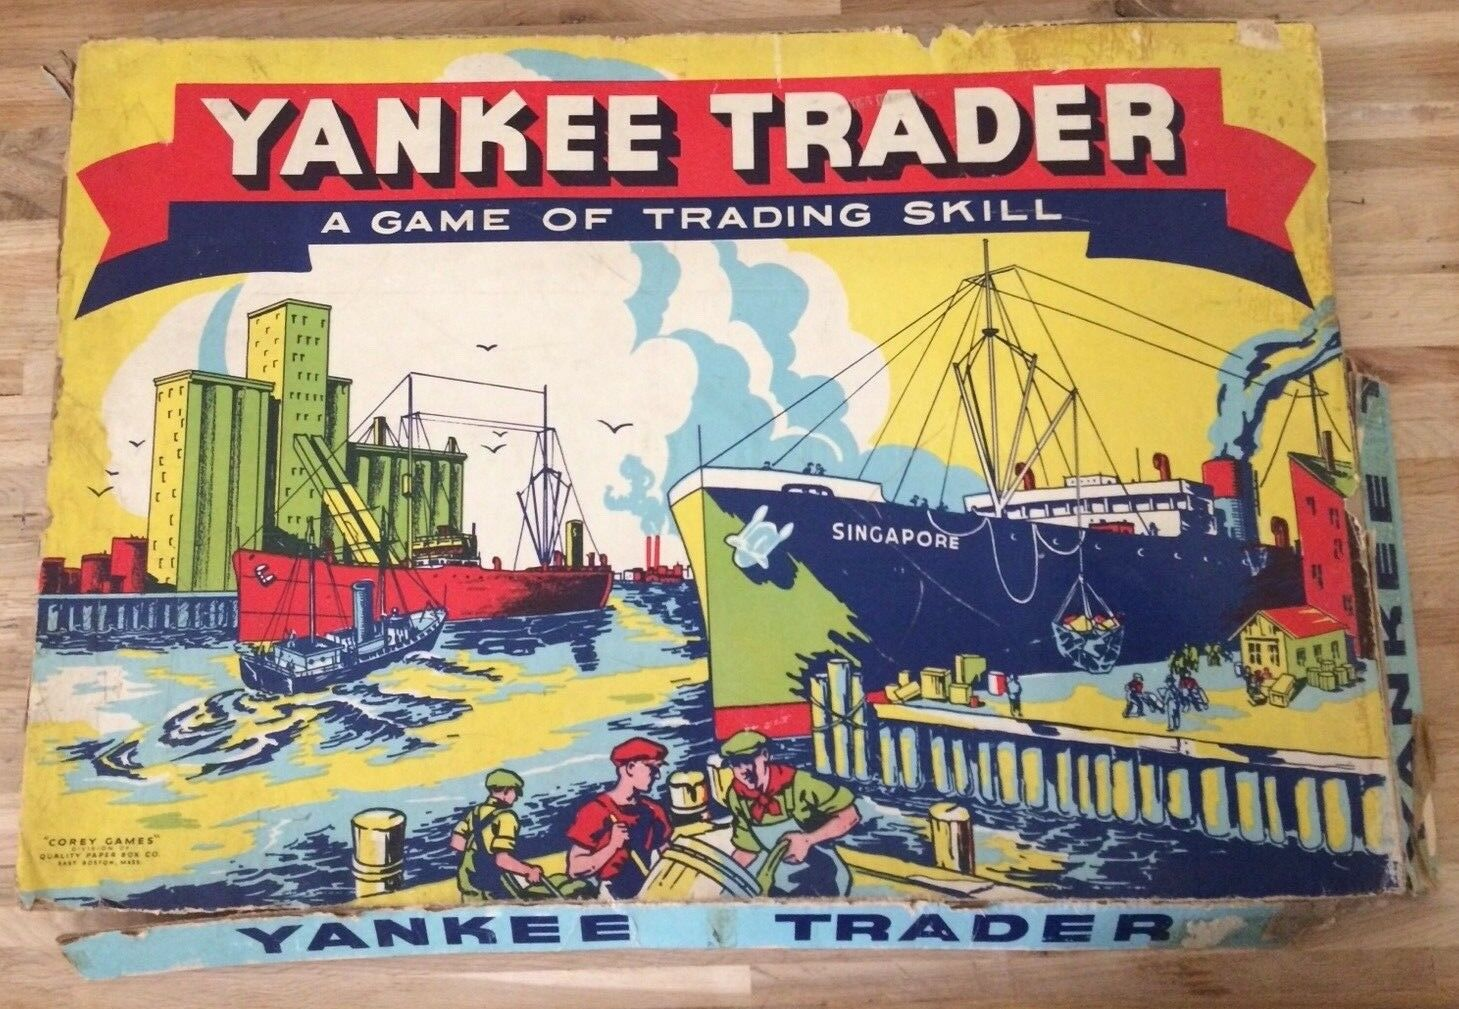 VINTAGE Yankee Trader RARE early Board Game 1941 Corey Marchand Commerce Maritime